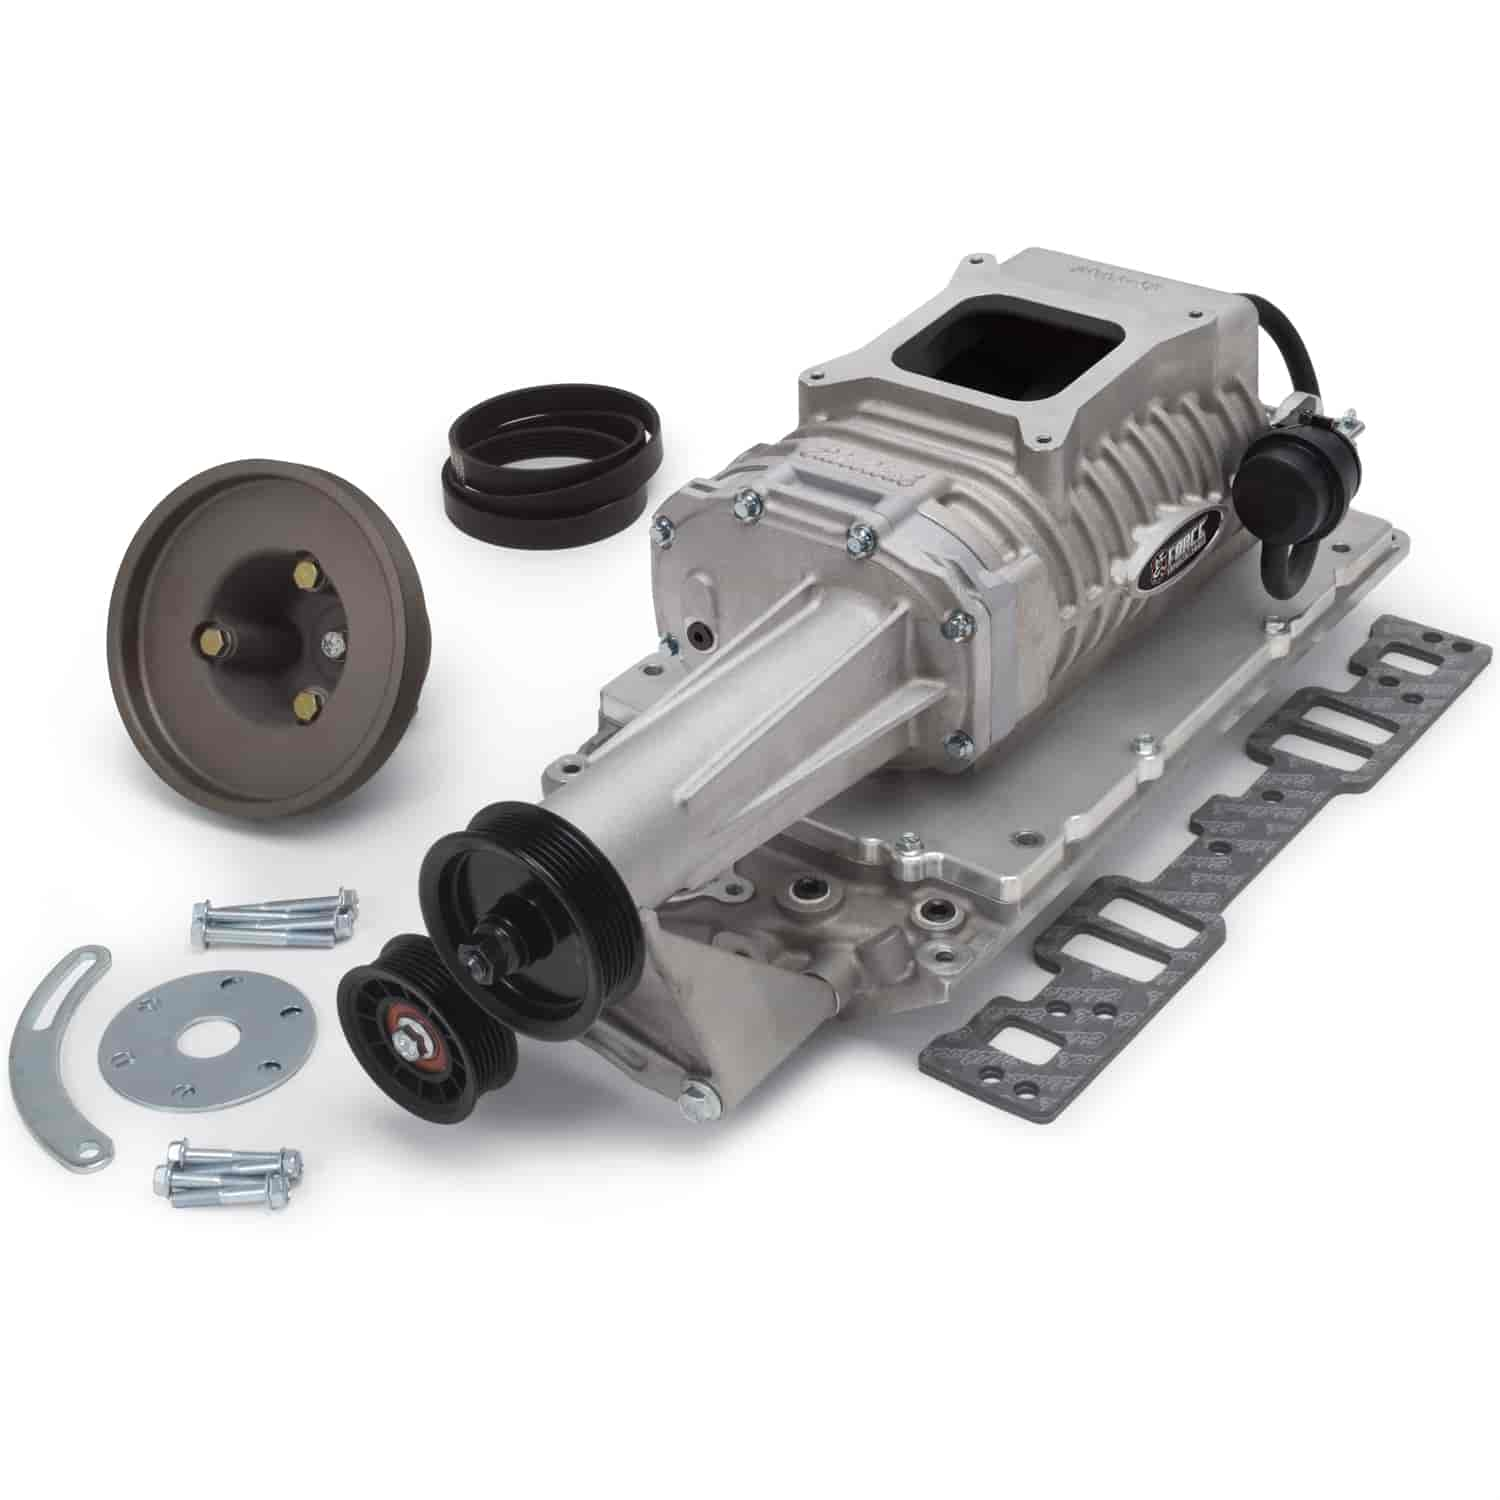 Trailer Hitches For Sale >> Edelbrock 1551: E-Force 122 Supercharger Kit | JEGS